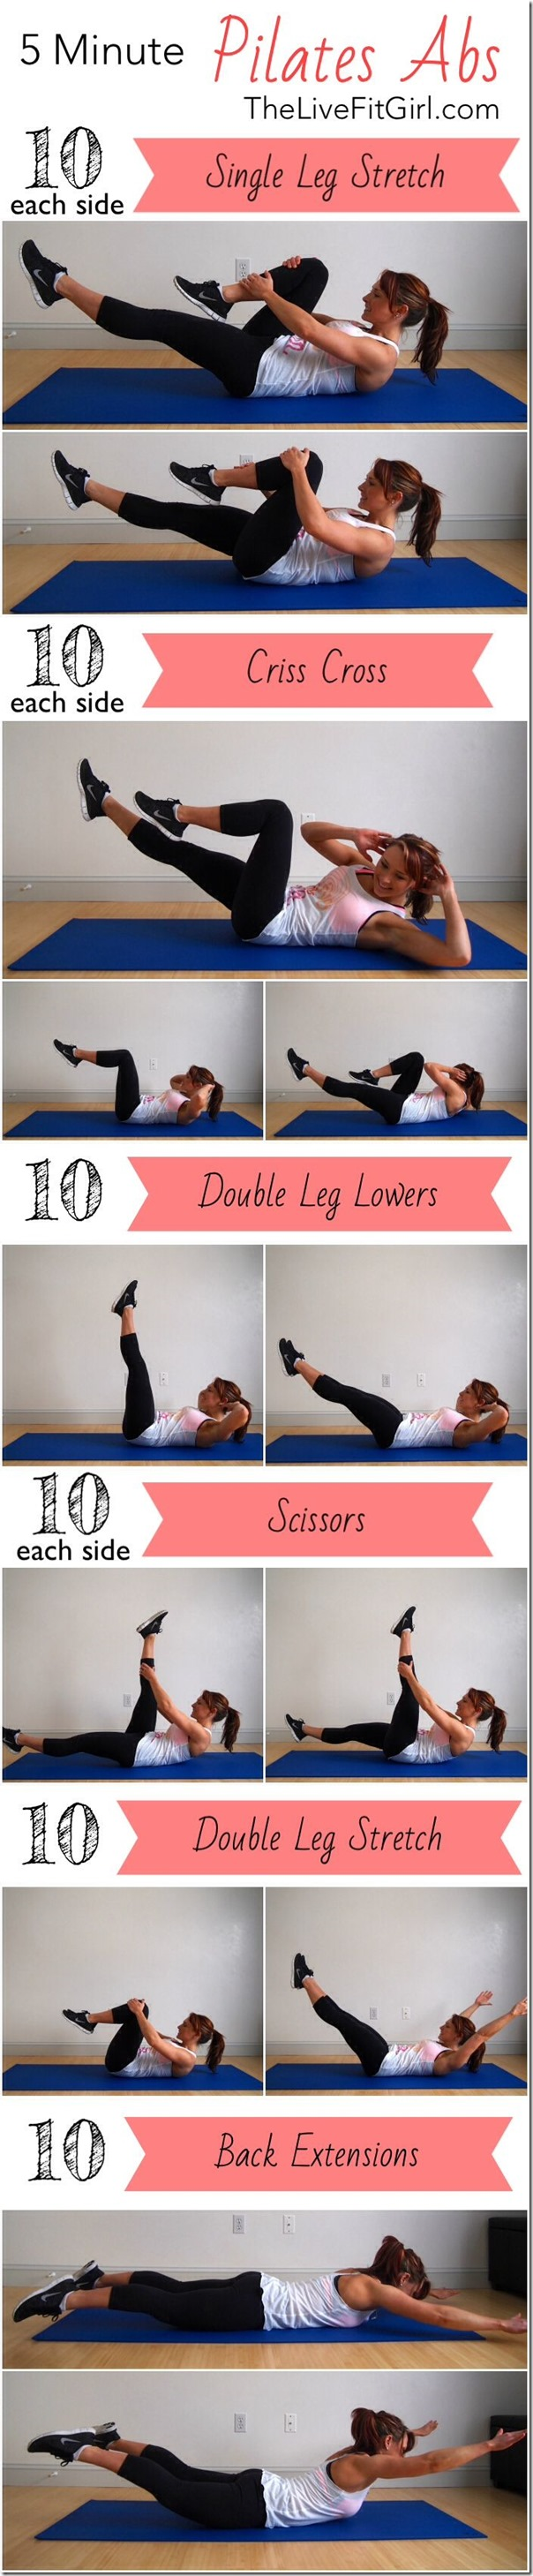 5 minute ab routine